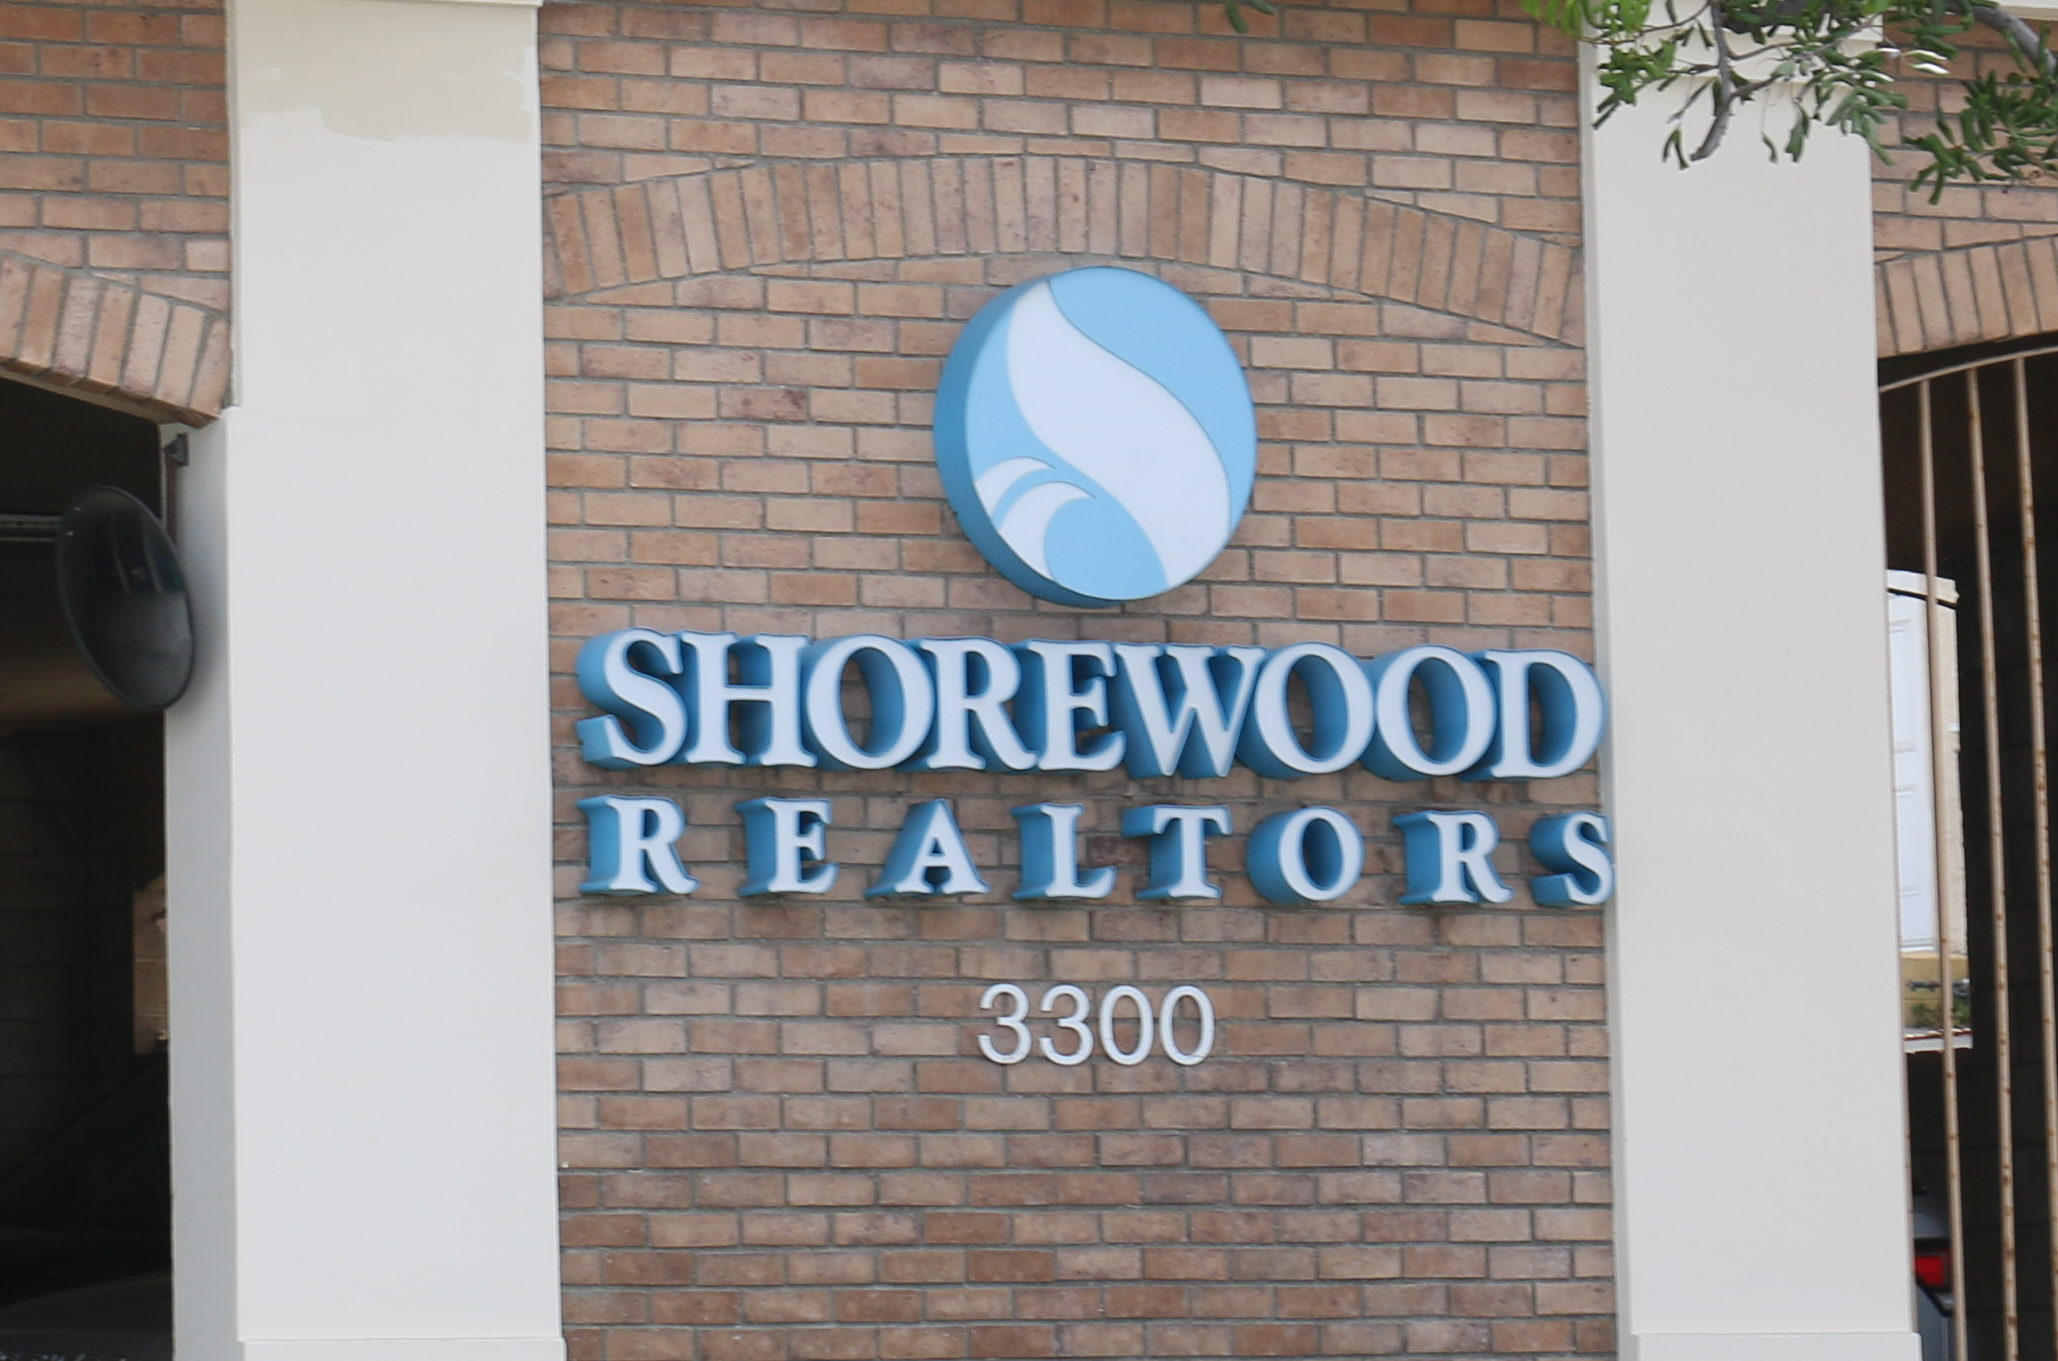 Shorewood Realtors office at 33rd Street and Highland Avenue in Manhattan Beach. Two well-known real estate agencies dropped their affiliation with Shorewood shortly after the company filed for Chapter 11 bankruptcy. Photo by David Mendez